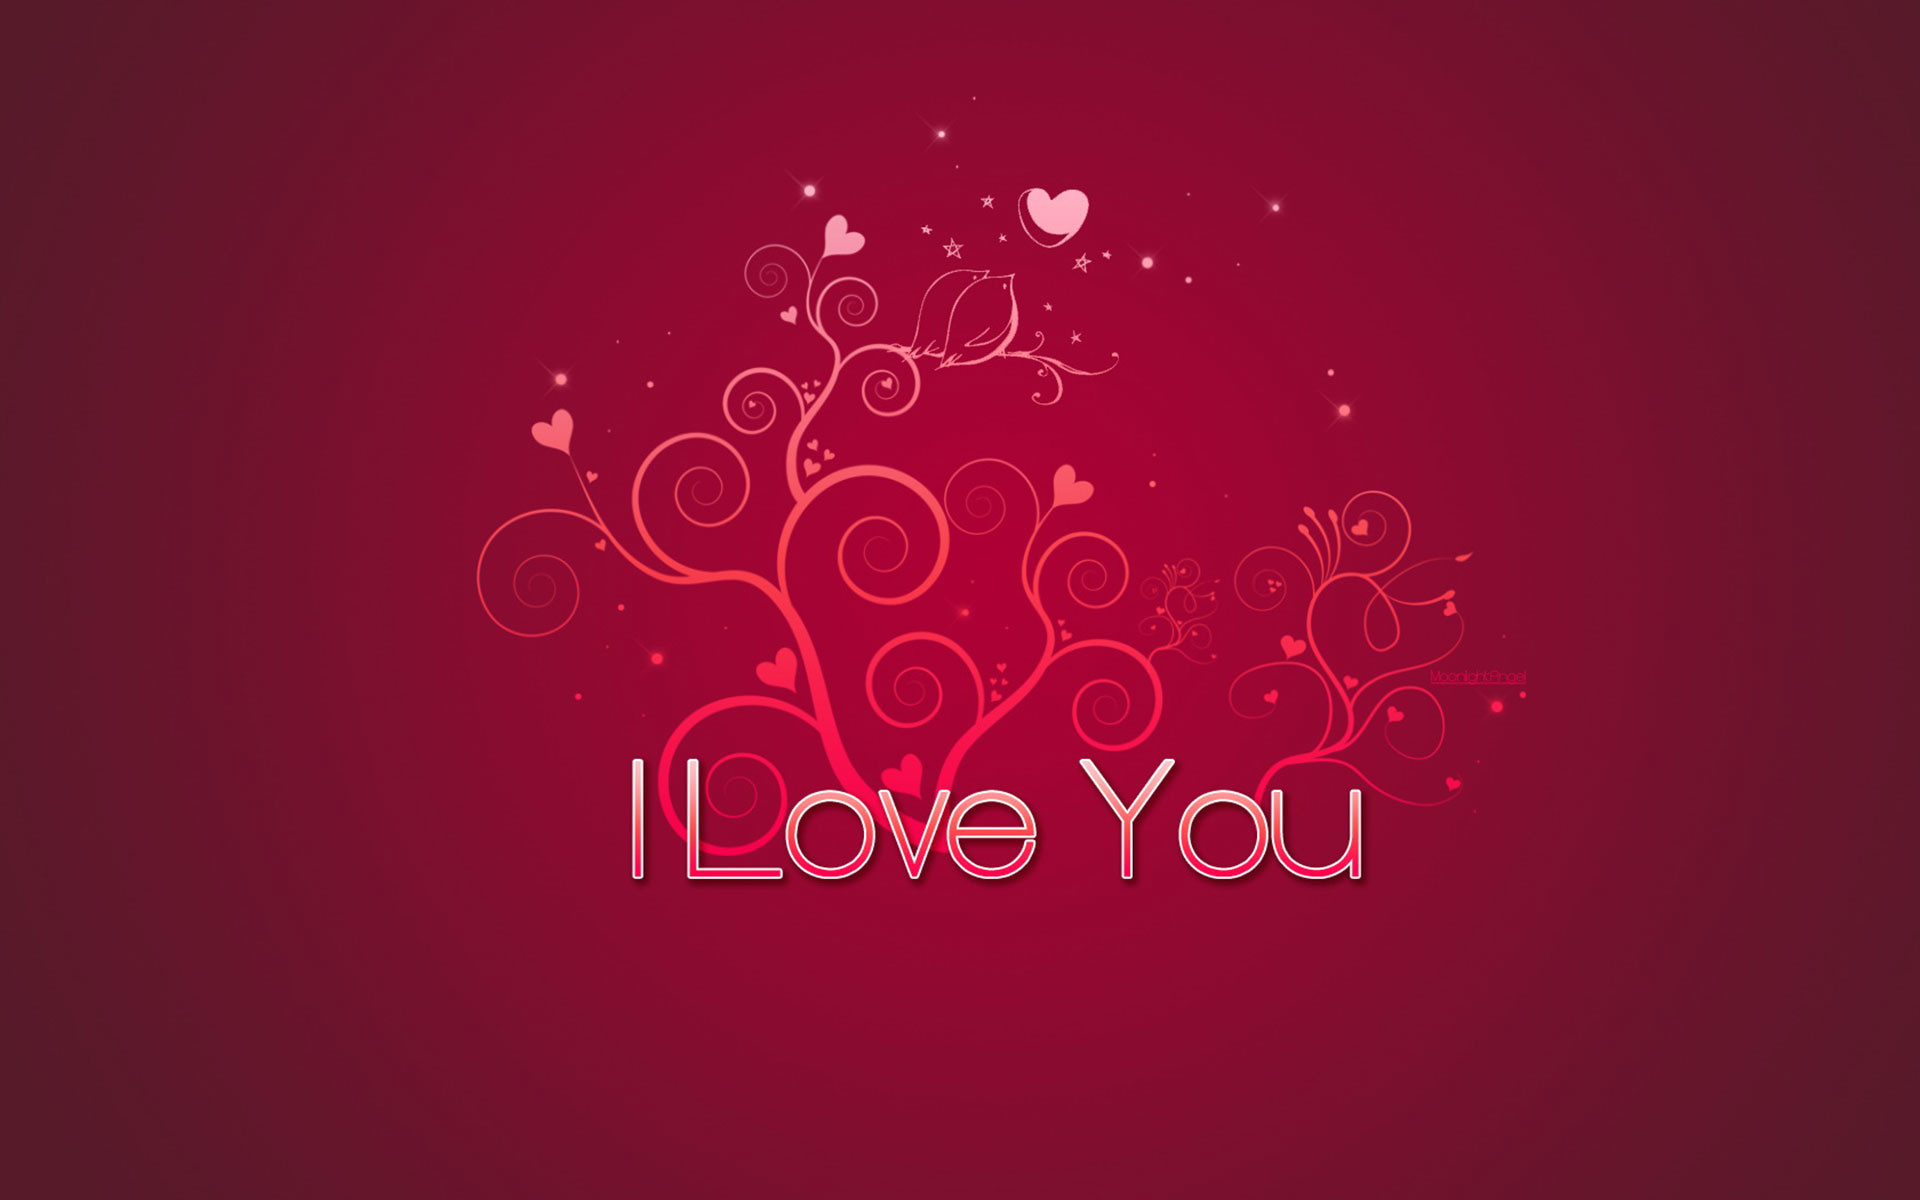 Free HD I Love You Wallpapers Cute I Love You Images